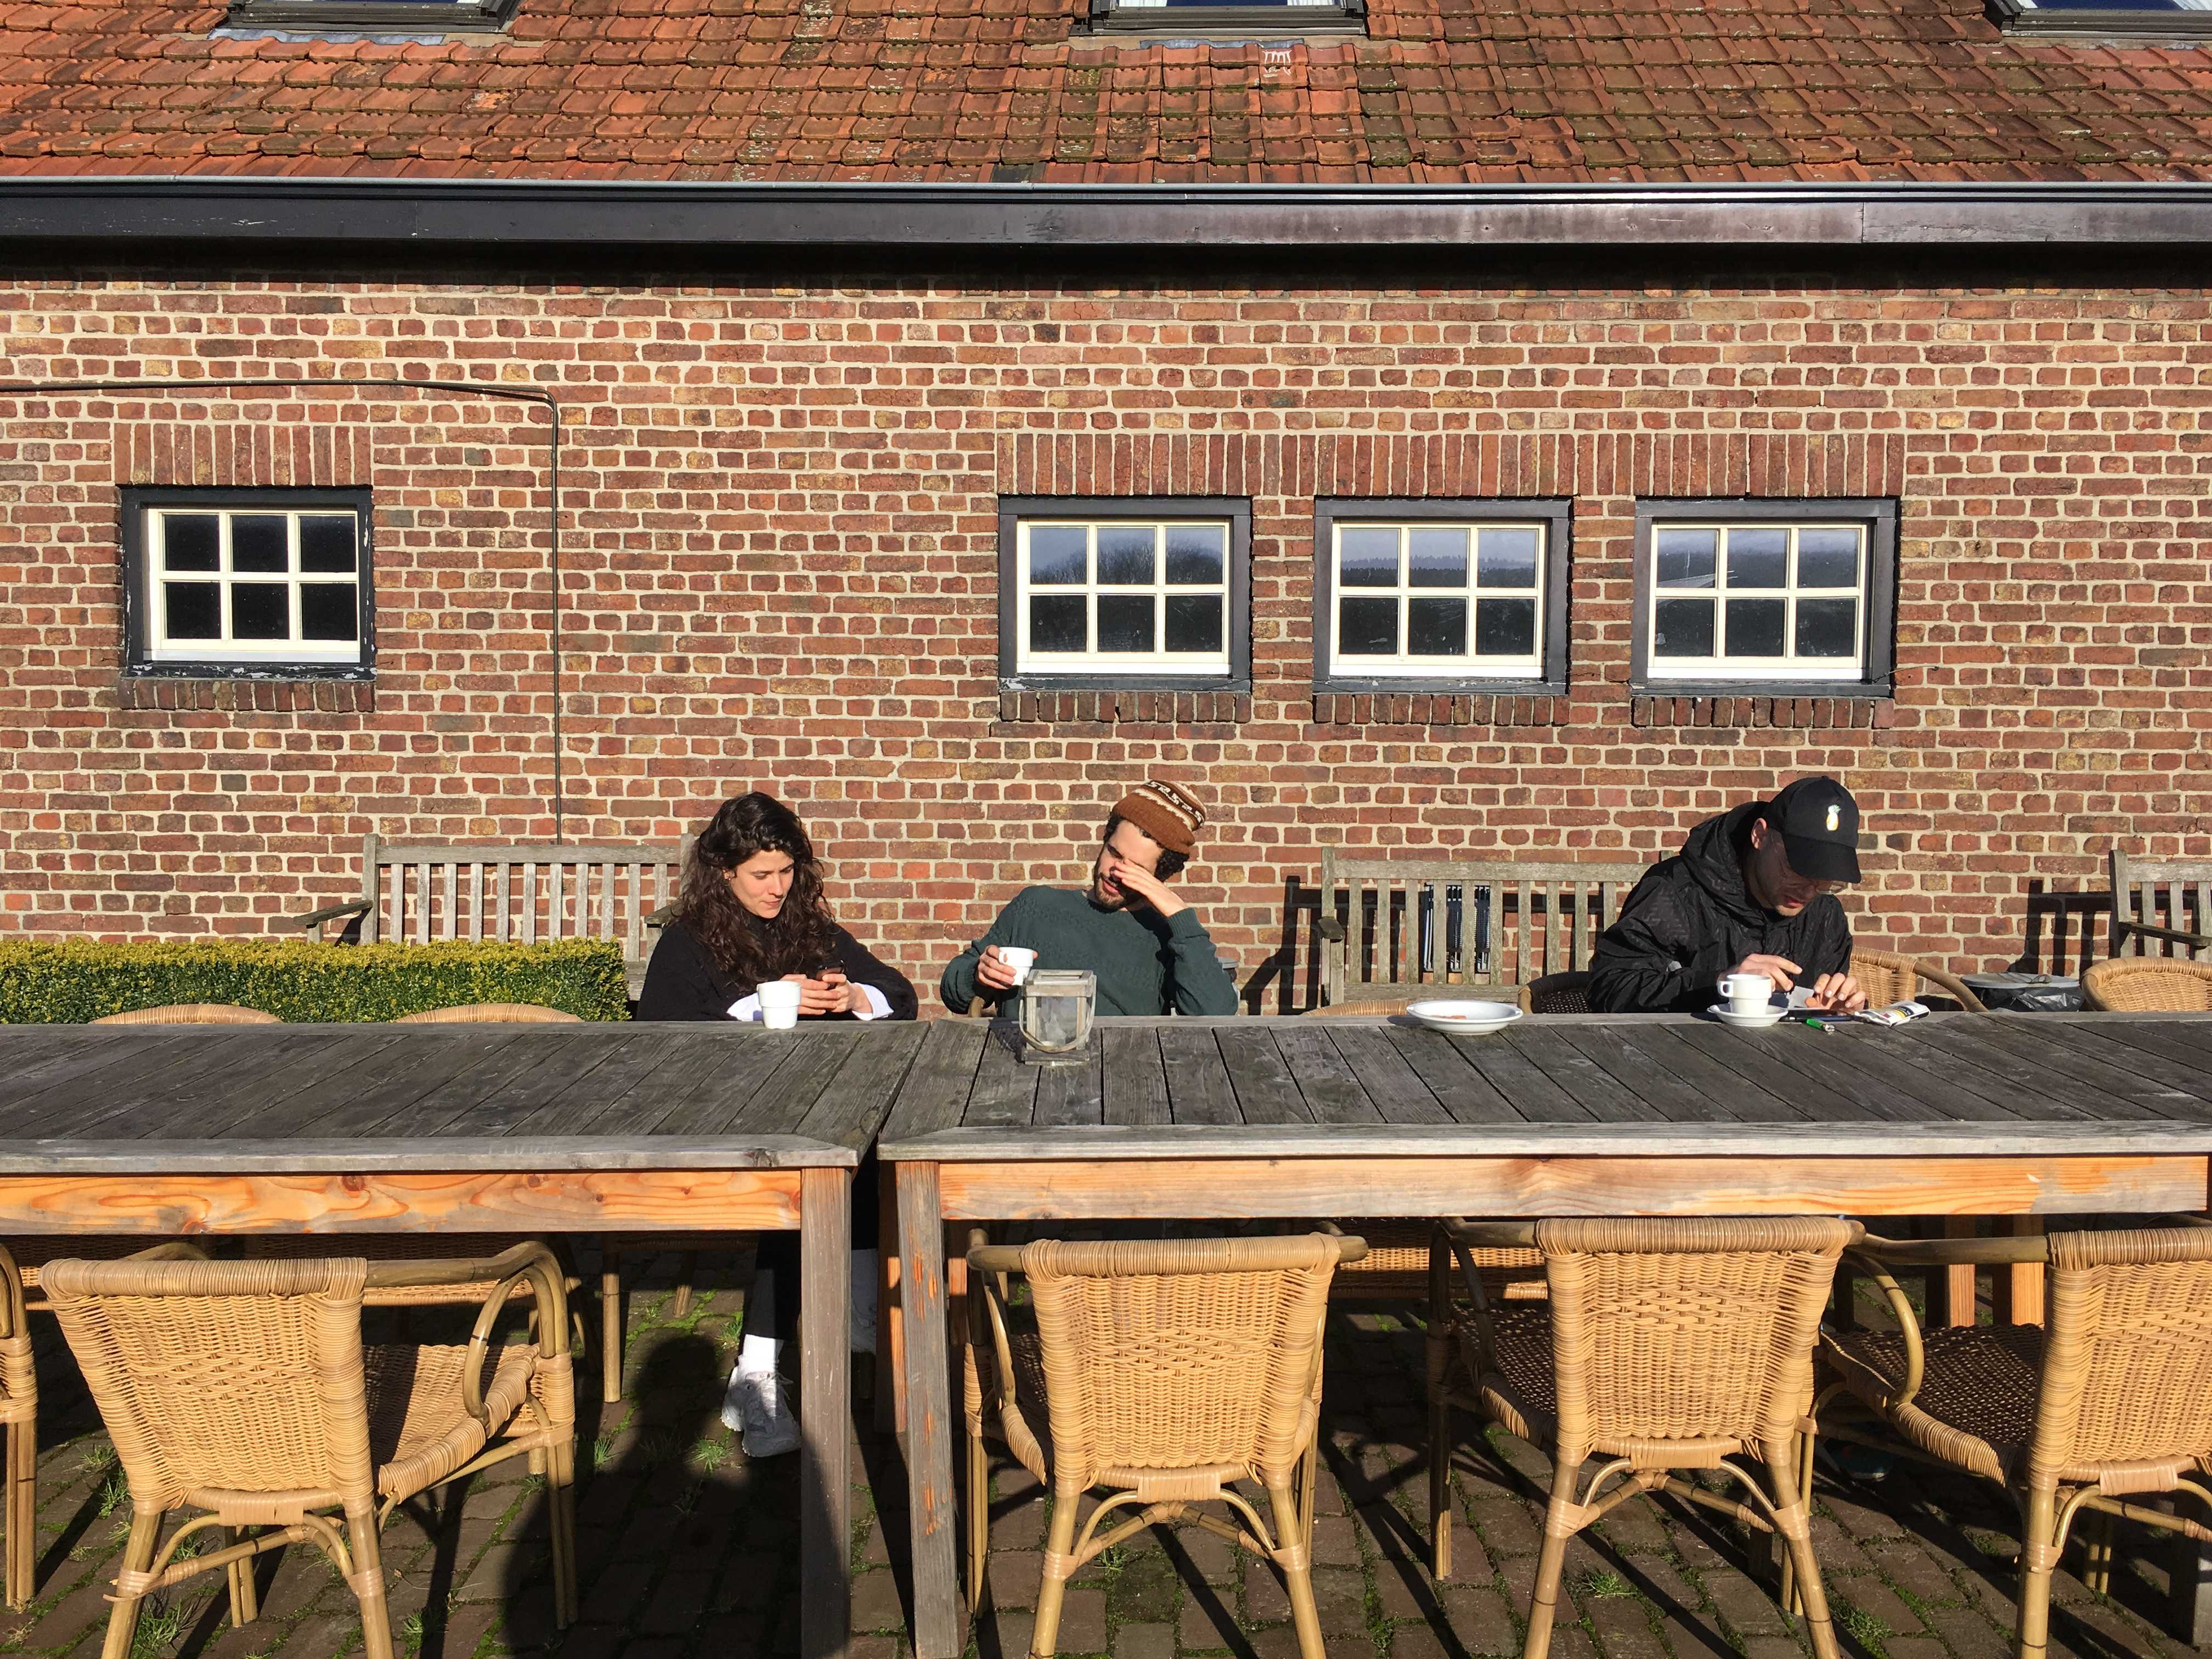 Afternoon coffee in the sun, DAI students Clara Amaral, Livio Casanova, and Jonathan Baumgärtner @ Het Bovenste Bos in Epen. DAI Week 6, 2018. Photo: Alaa Abu Asad